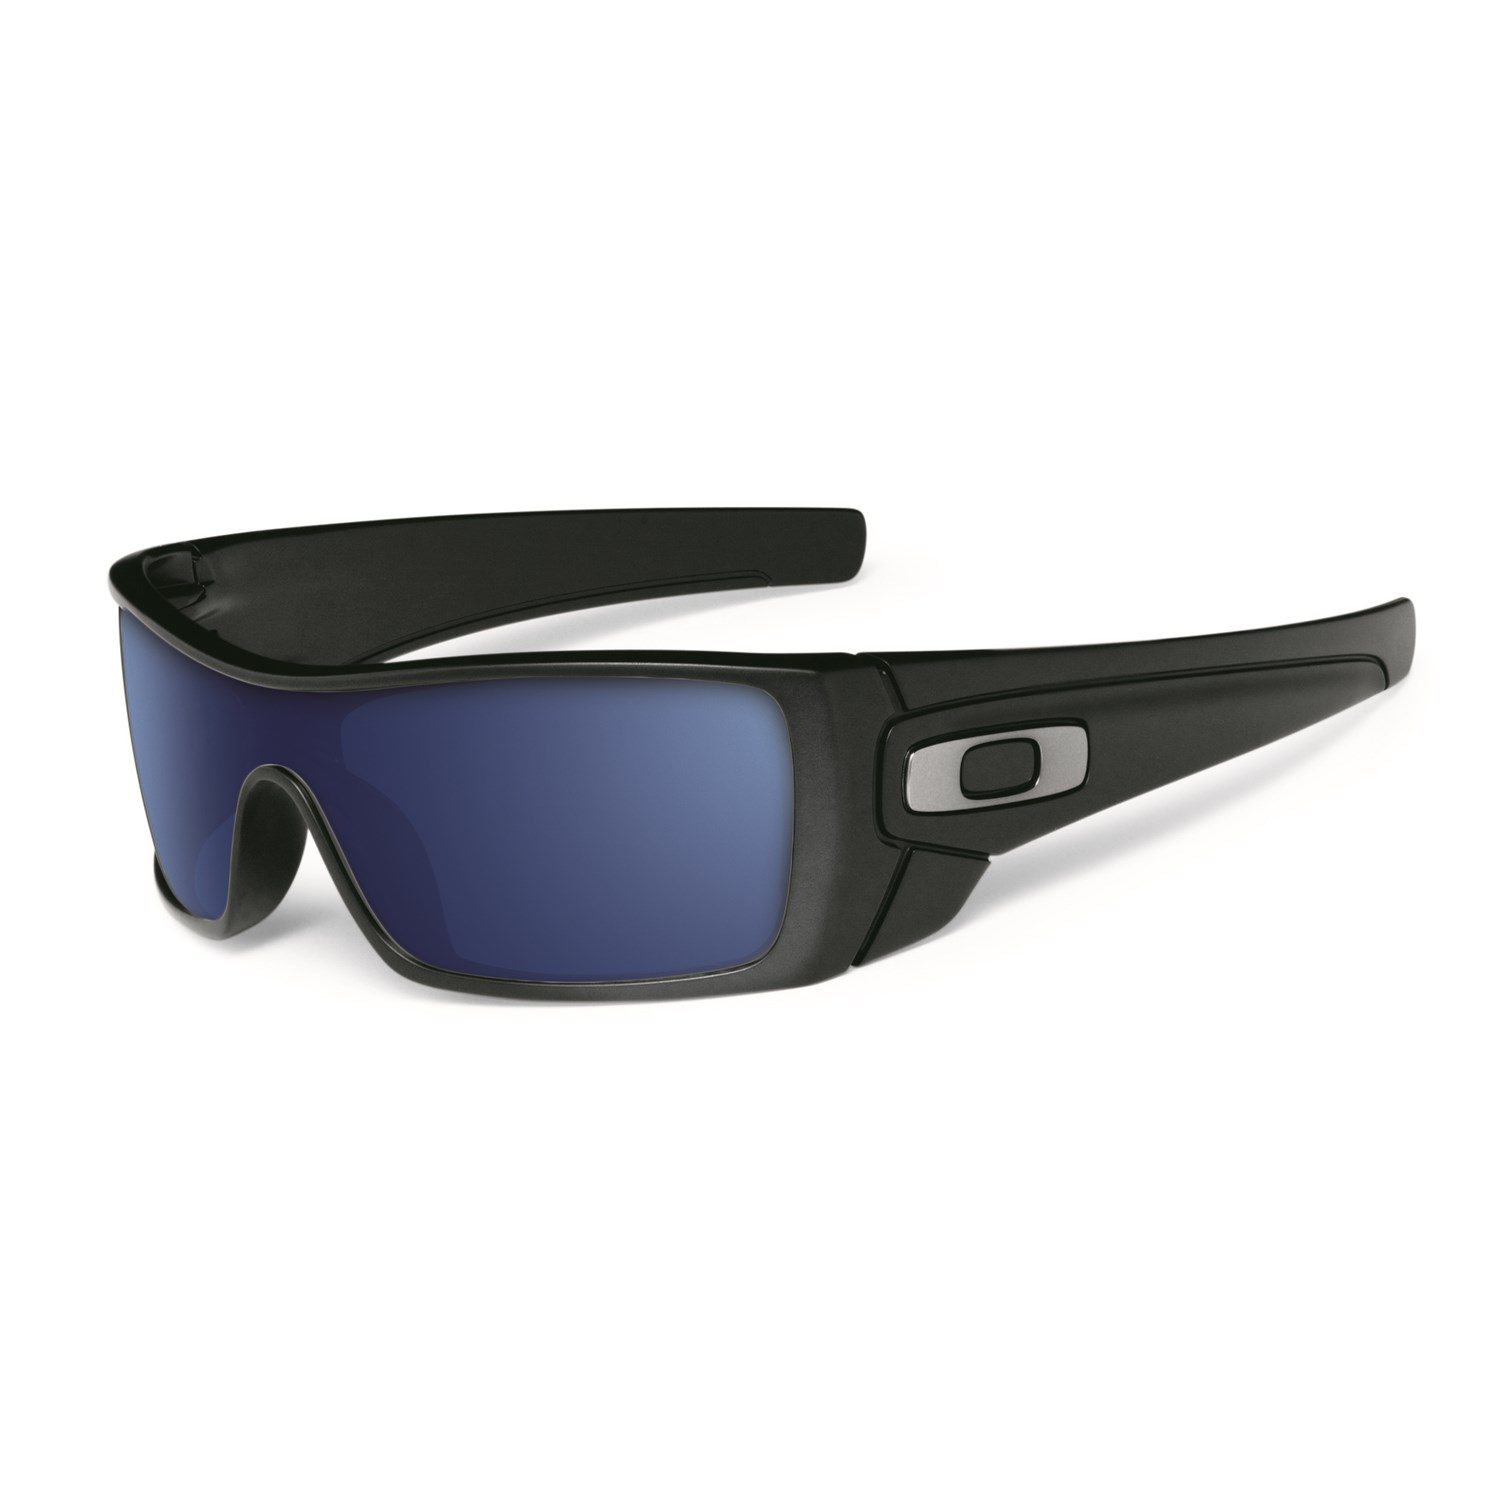 accb1ca6c15 Oakley Onesight Batwolf « One More Soul